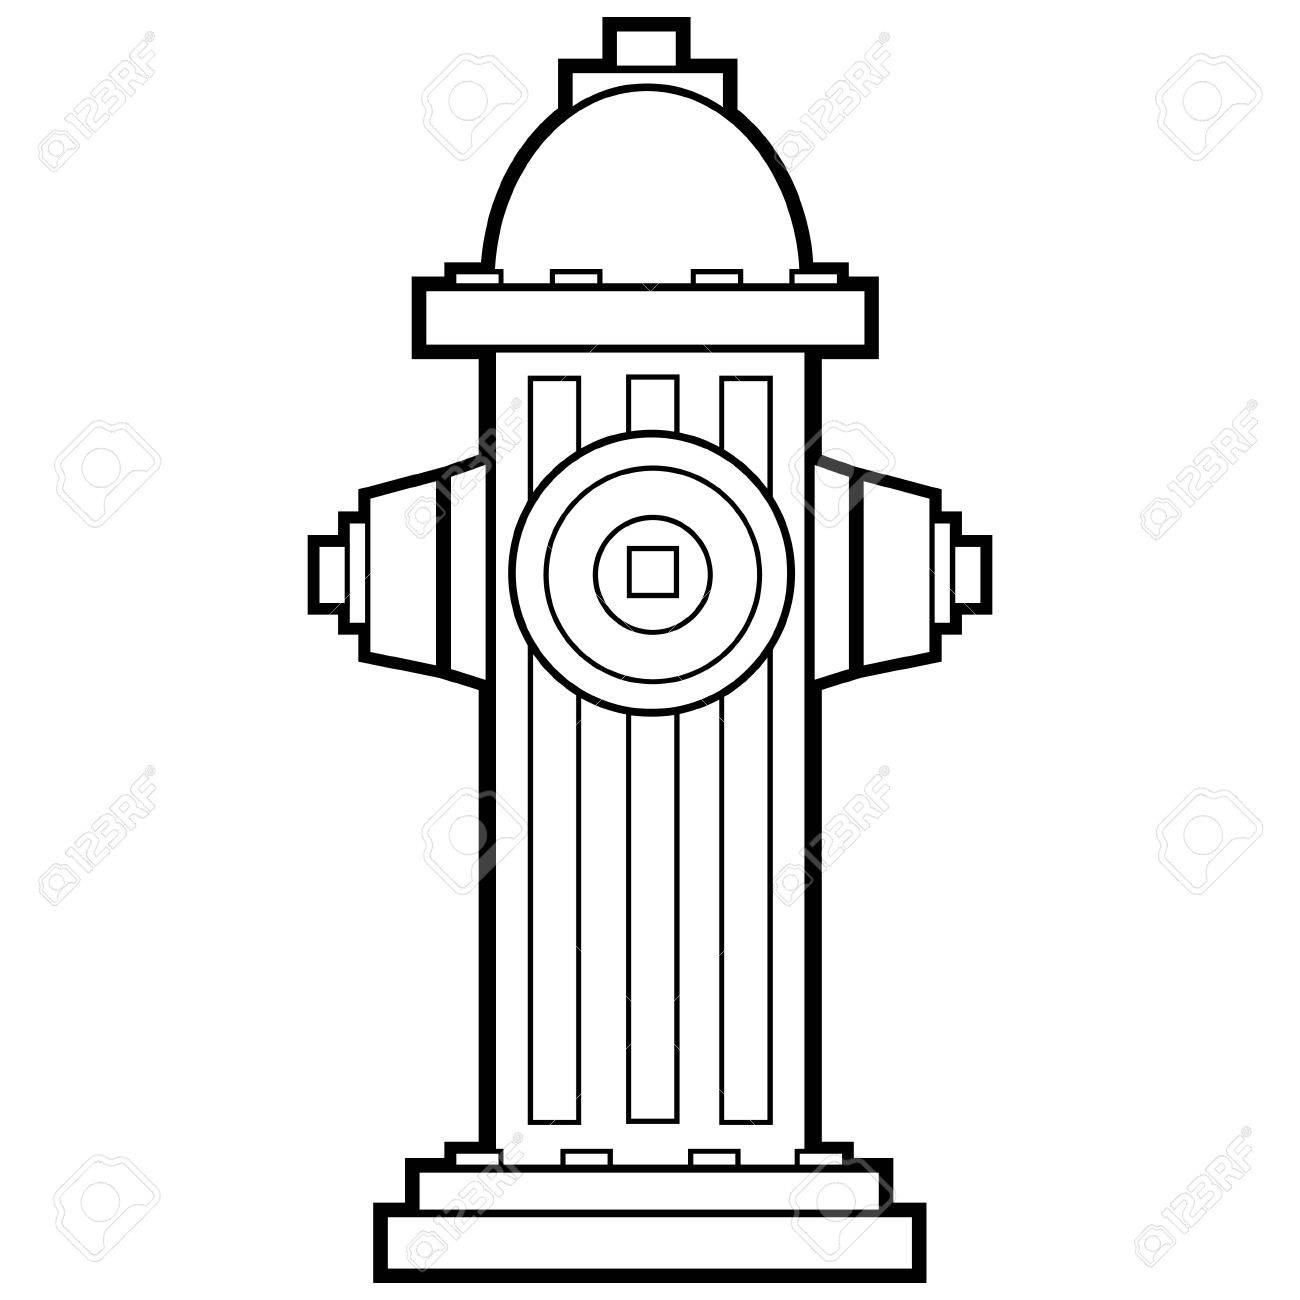 Fire hydrant clipart black and white 6 » Clipart Station.